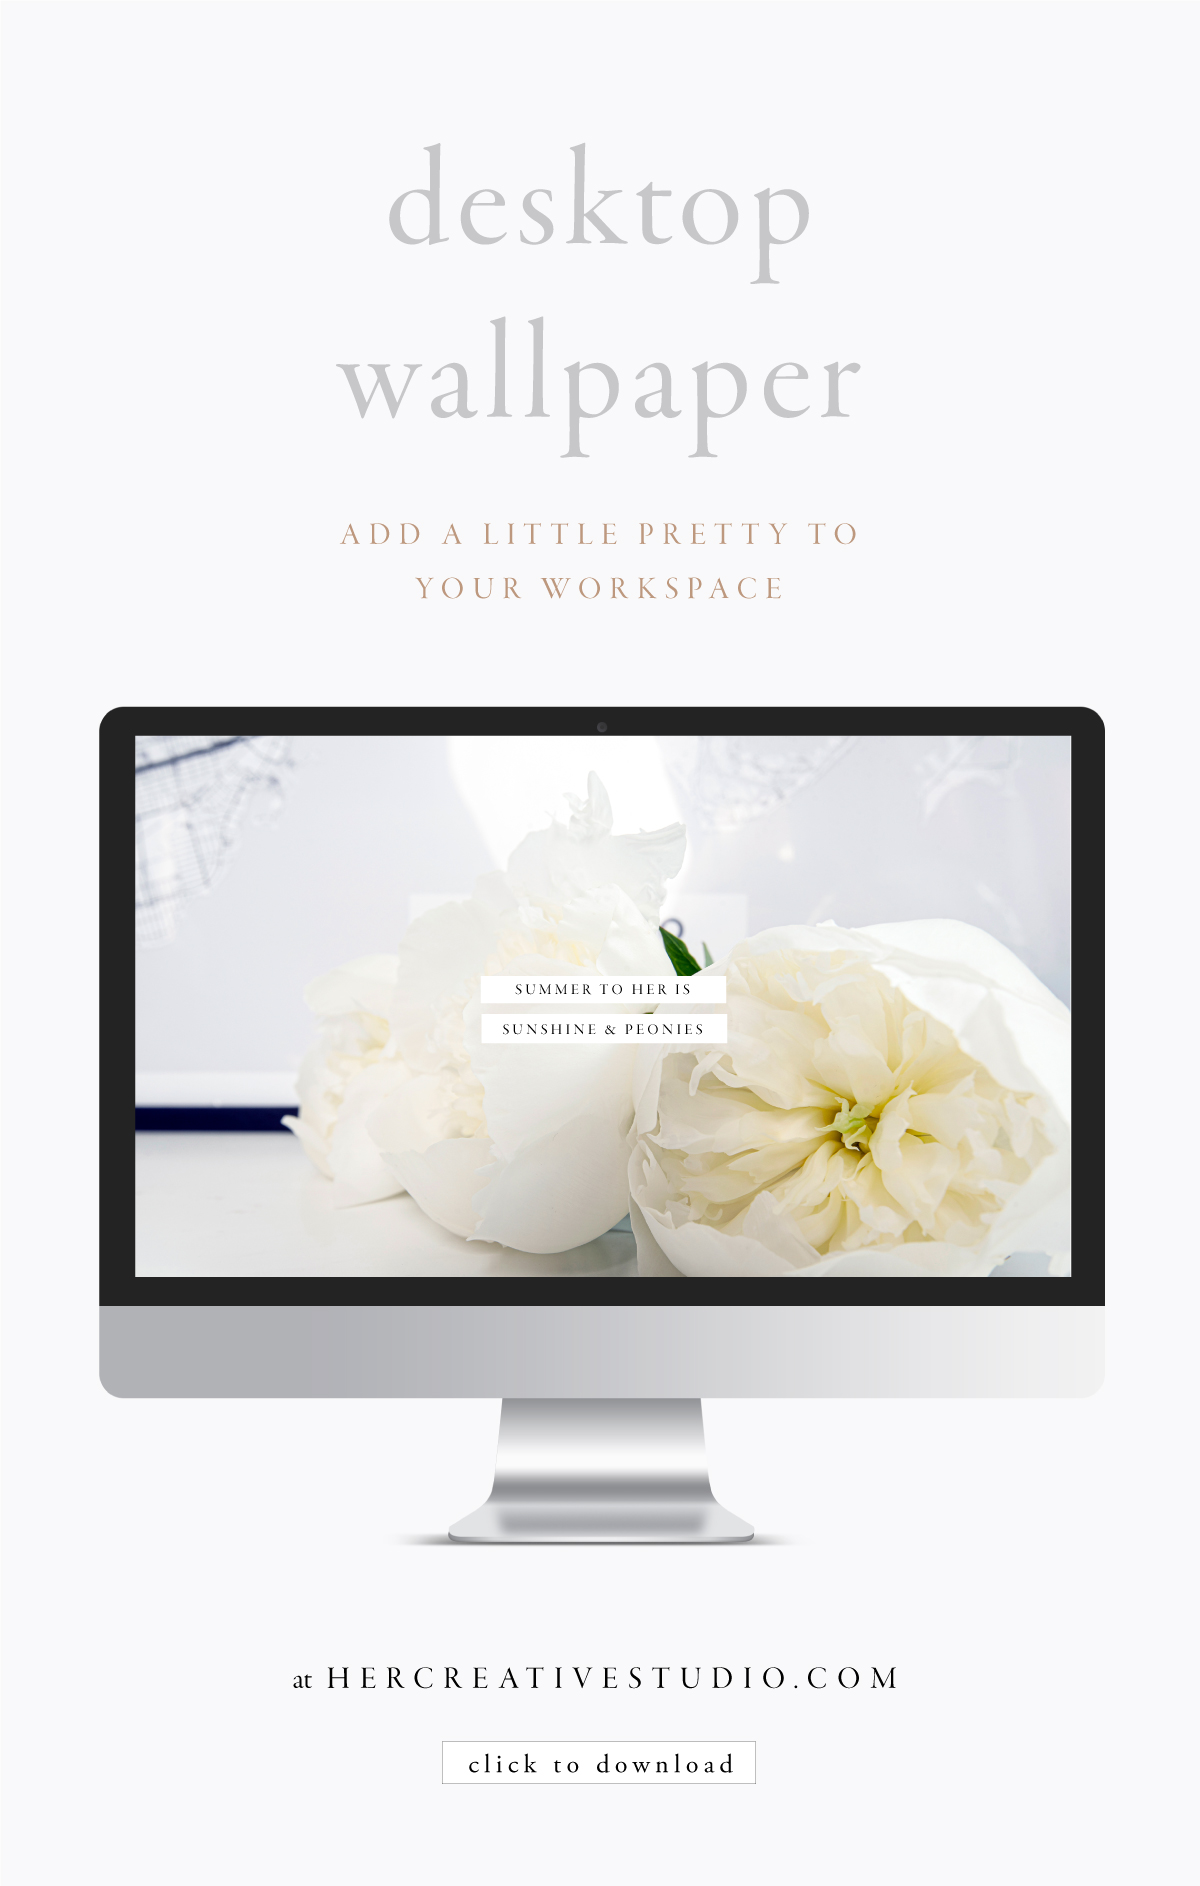 Make your workspace pretty with this FREE desktop Wallpaper from her Creative Studio.